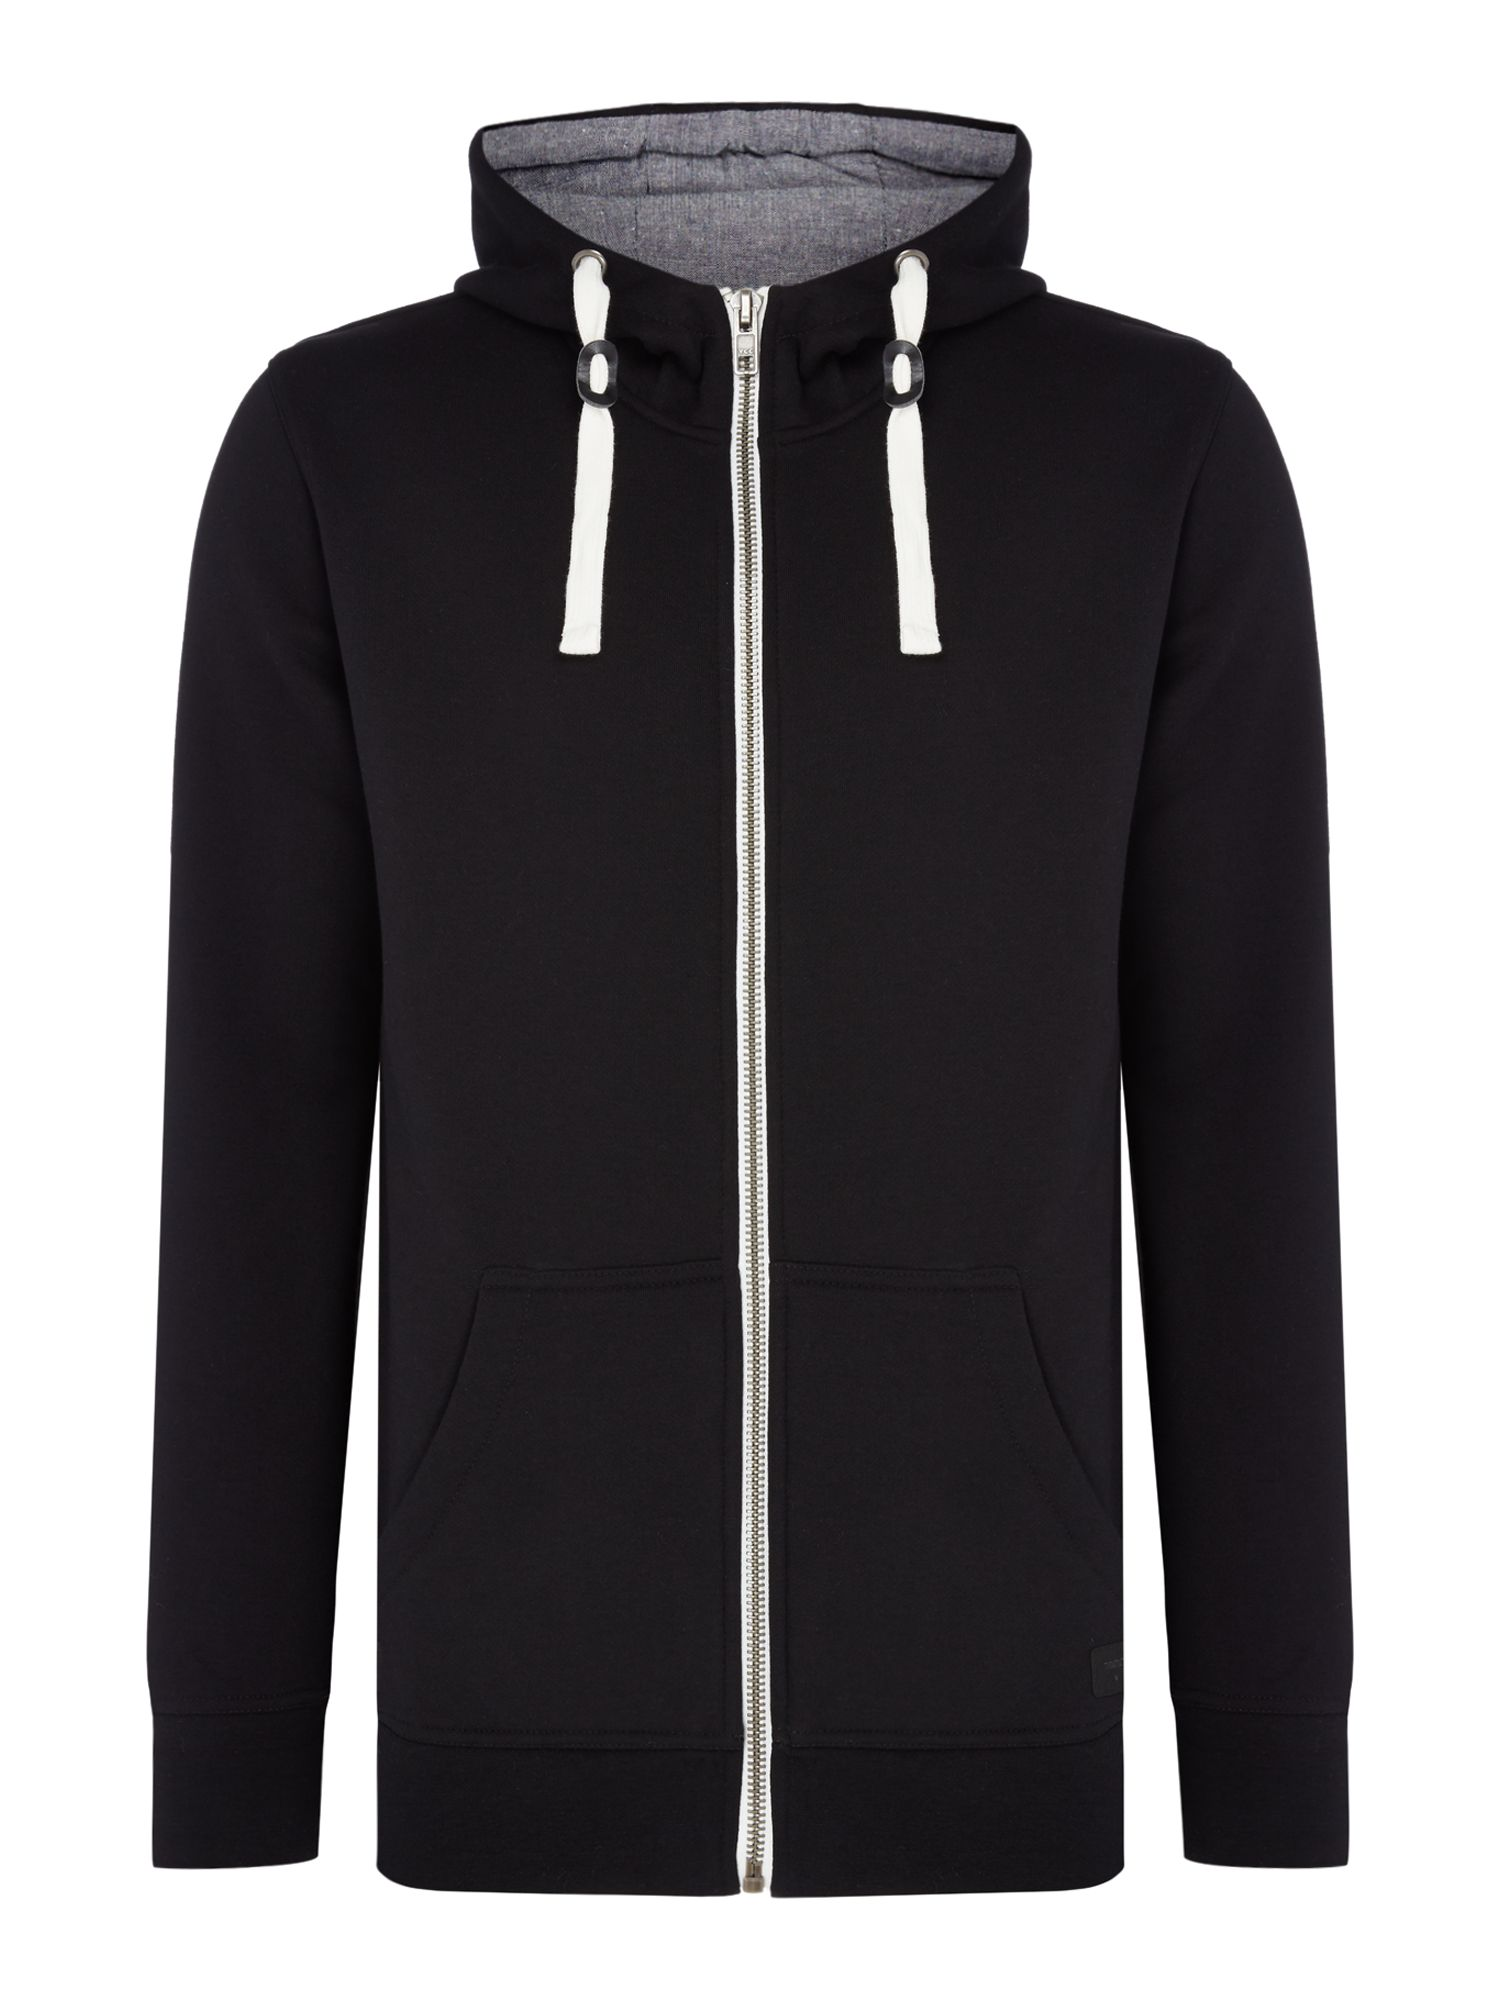 Men's Minimum Hooded Jumper, Black